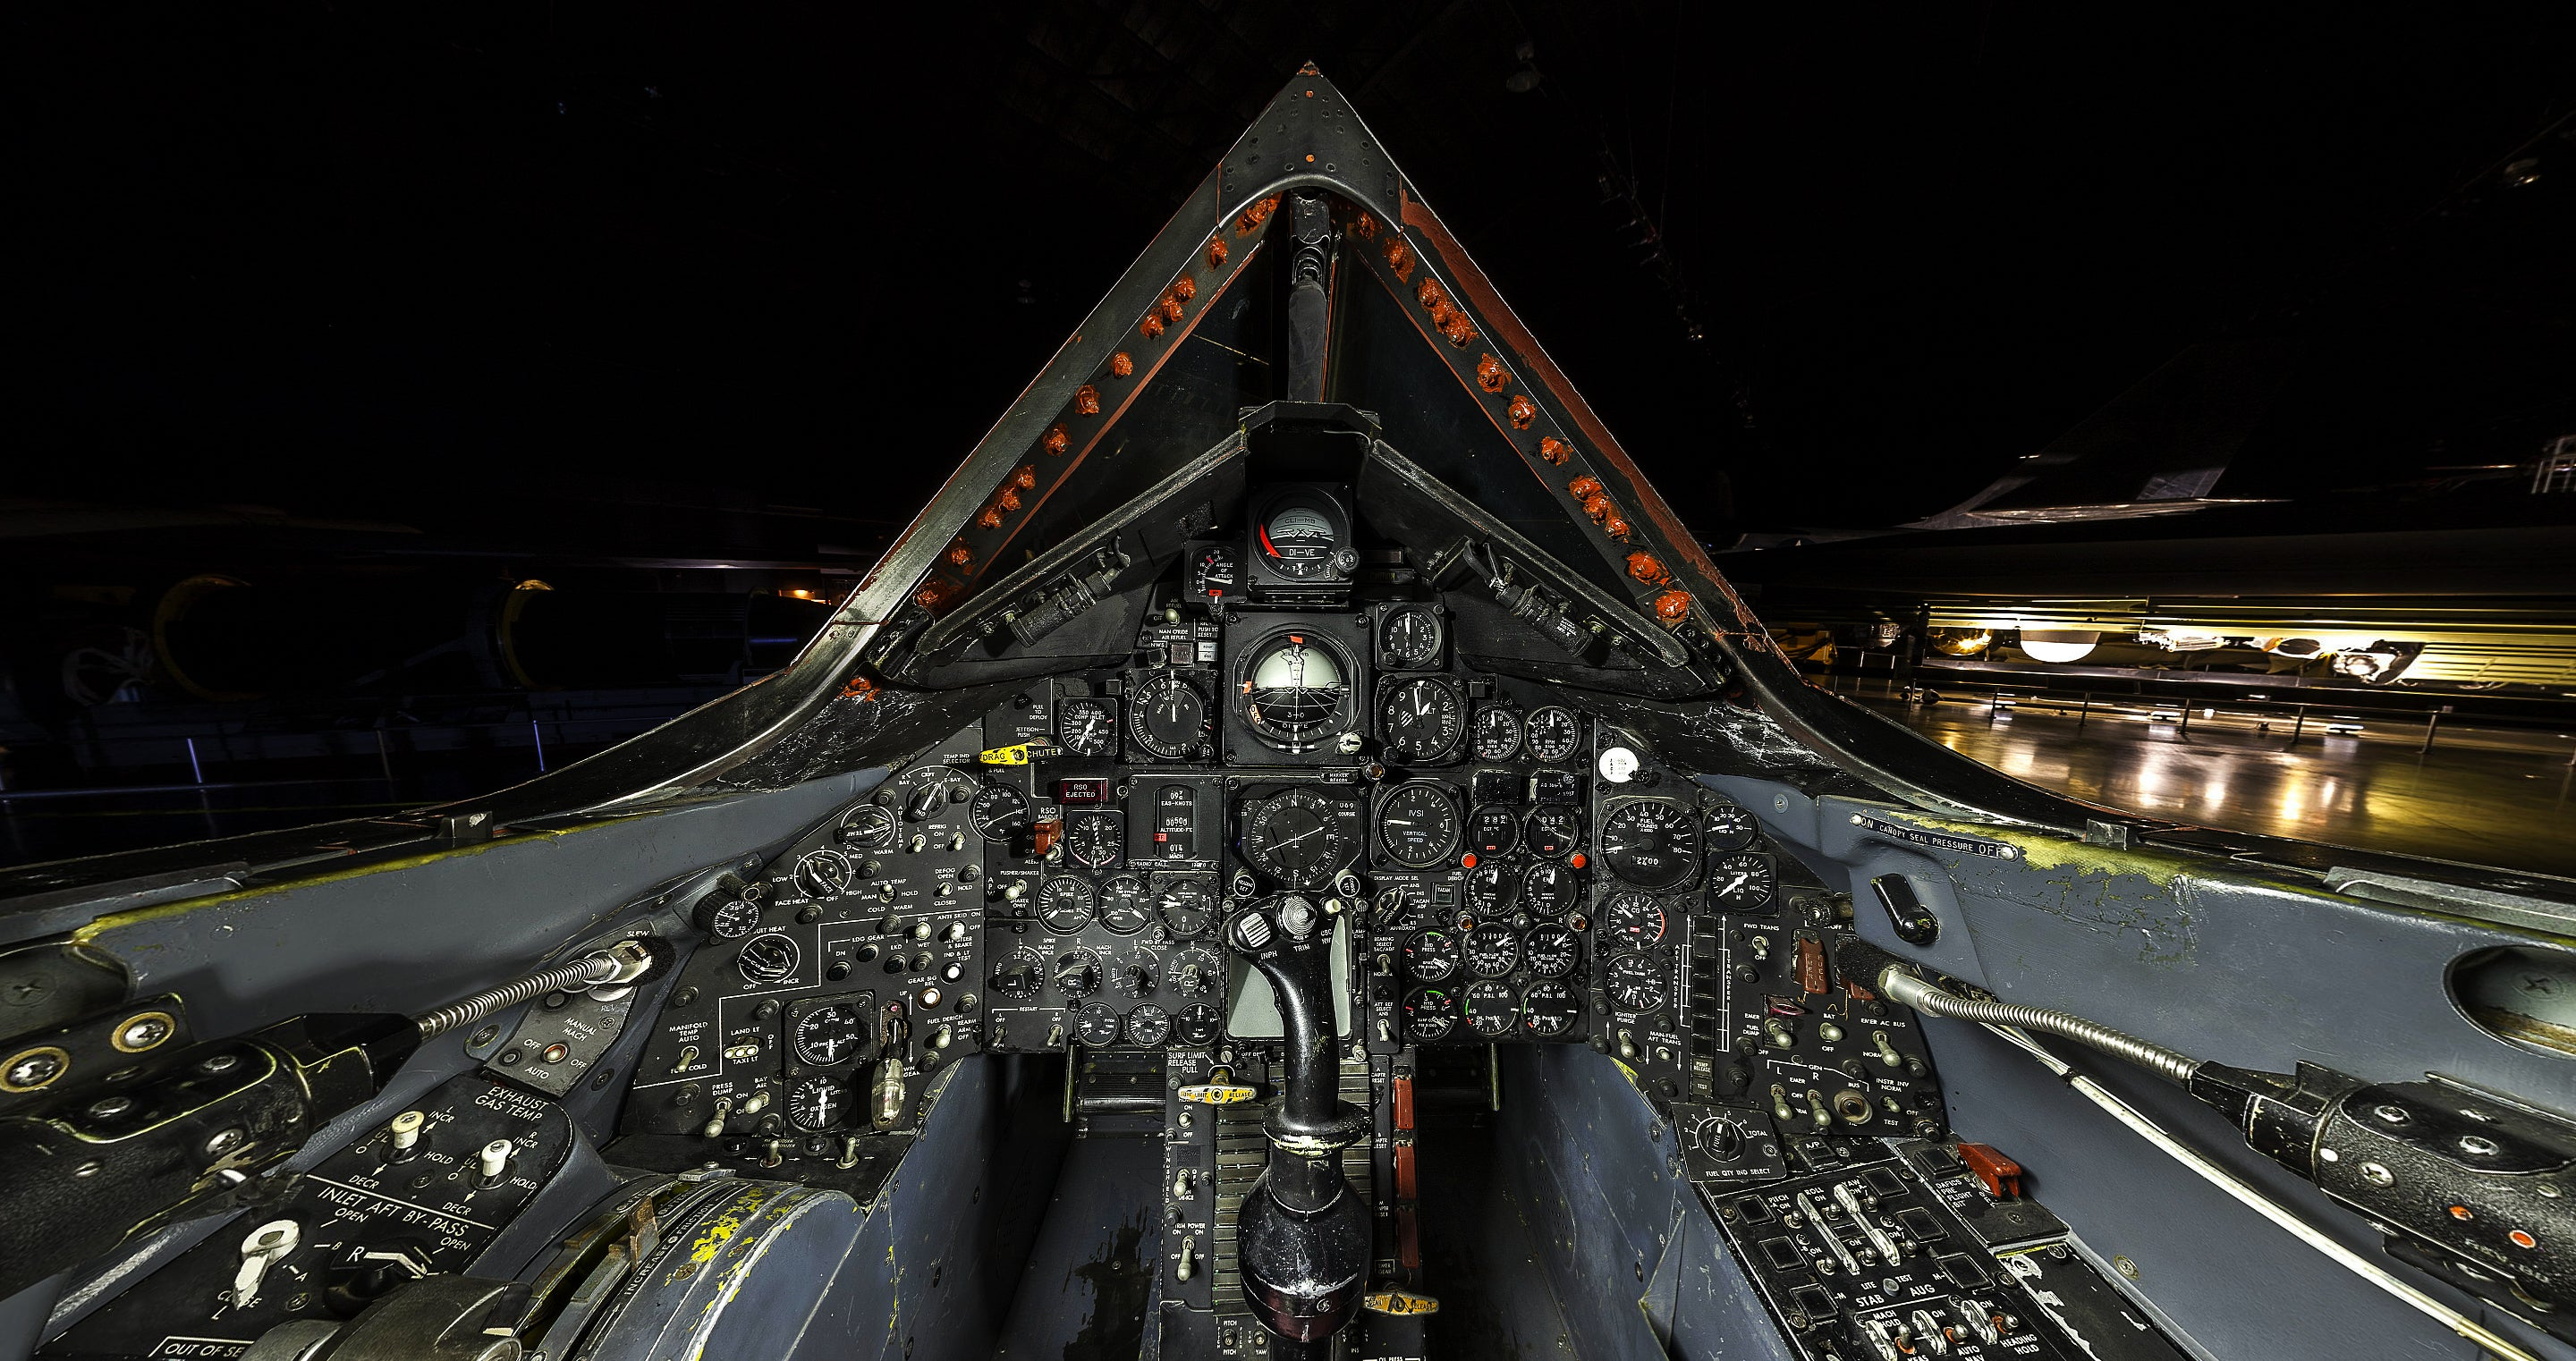 SR-71 Blackbird pilot explains how the cockpit works from the inside